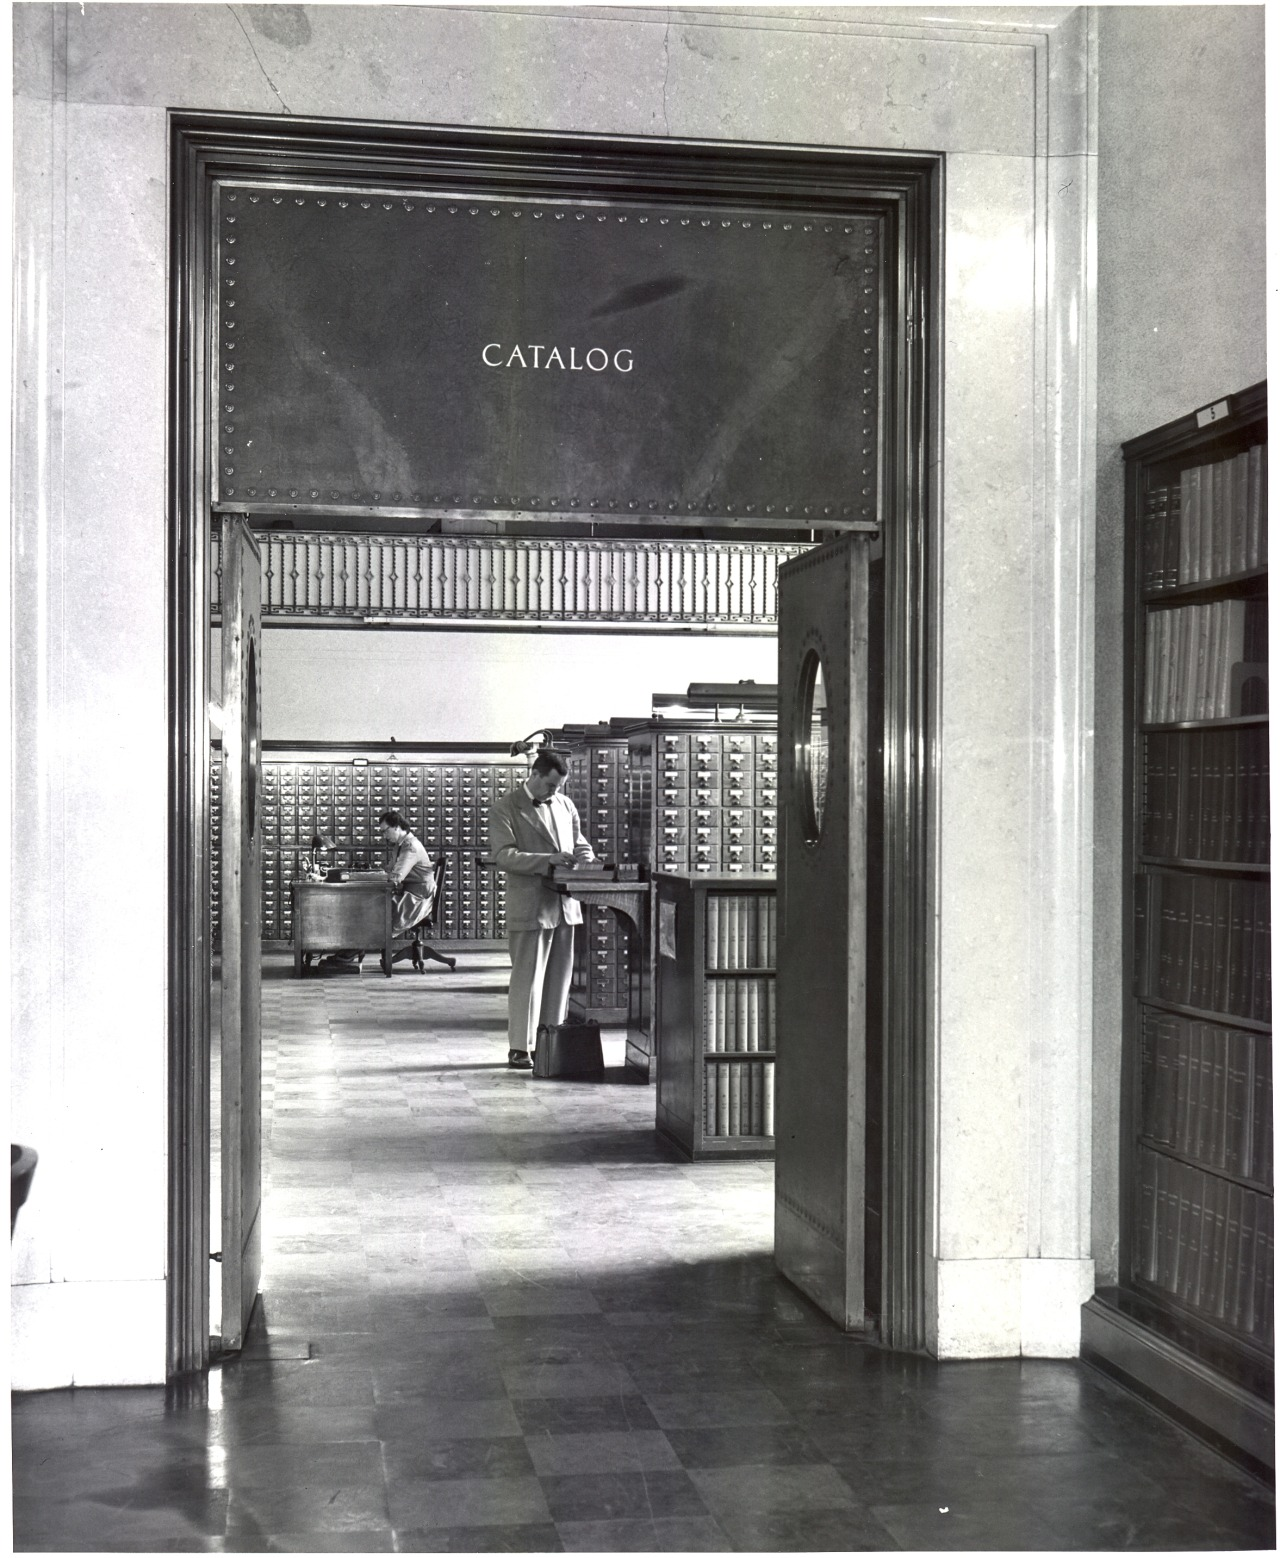 Black and white photograph of the Public Catalog room, located just inside the front entrance to the Main Library. Photo taken in 1955.